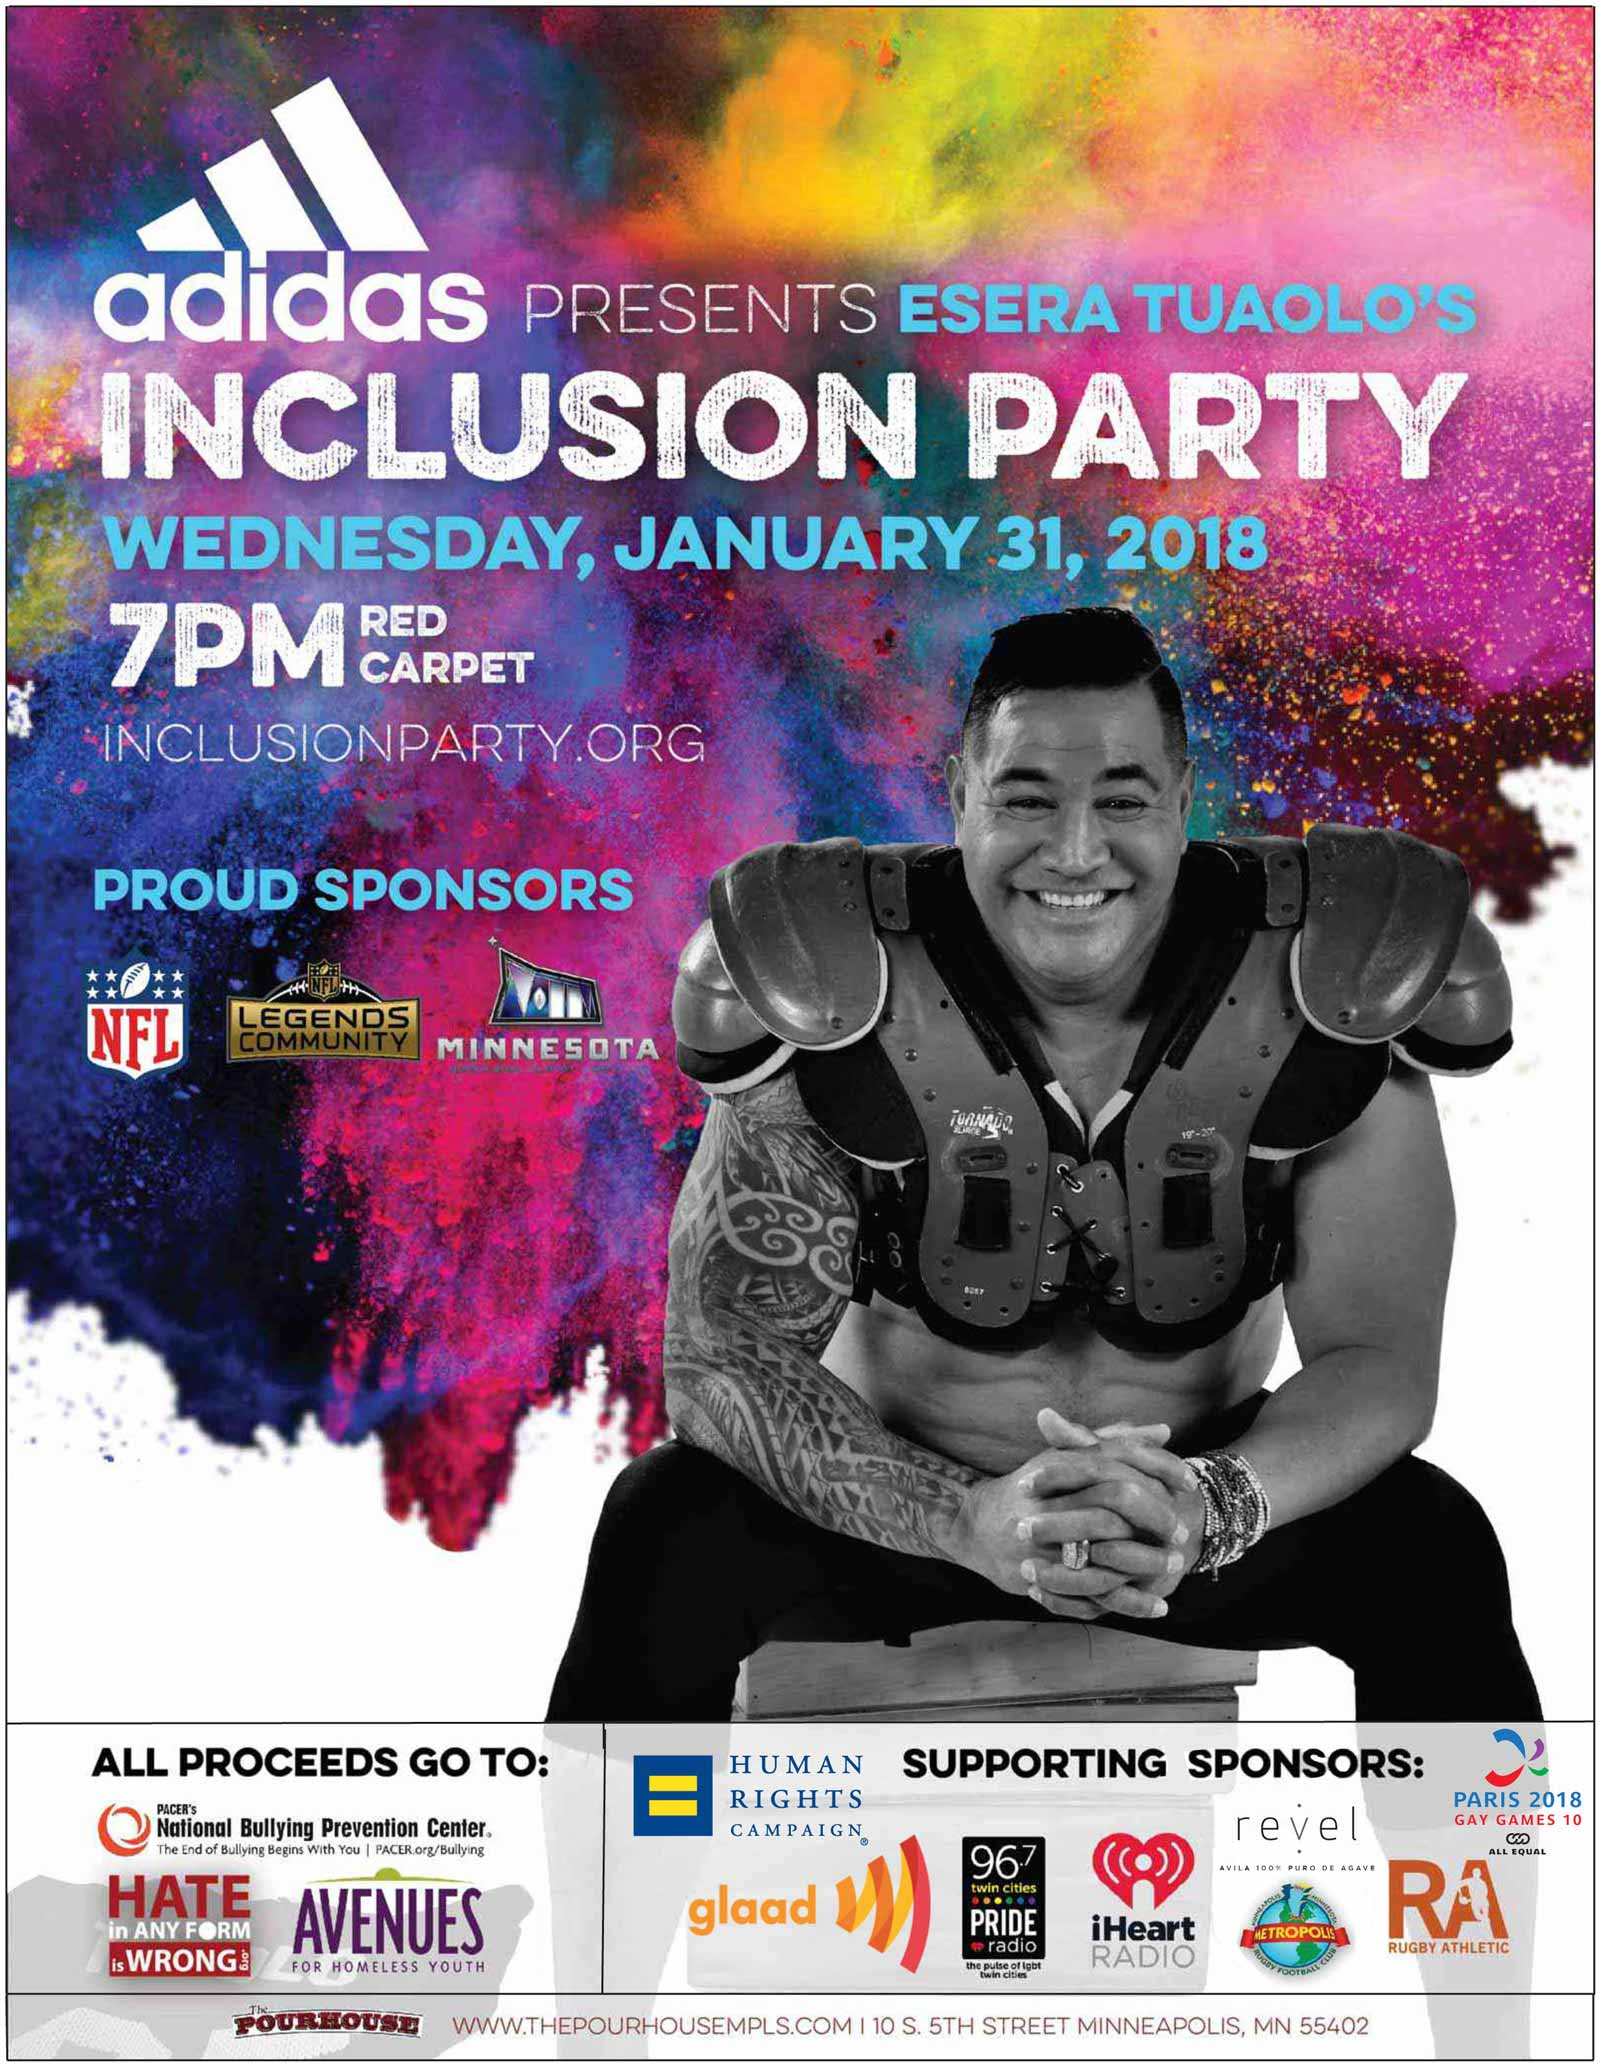 adidas presents inclusion party 2018